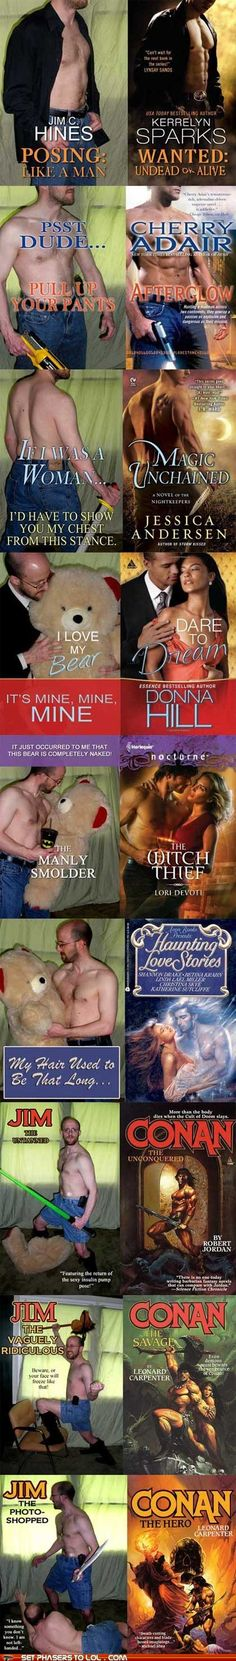 Very manly indeed.  Jim C. Hines recreates romance novel covers.